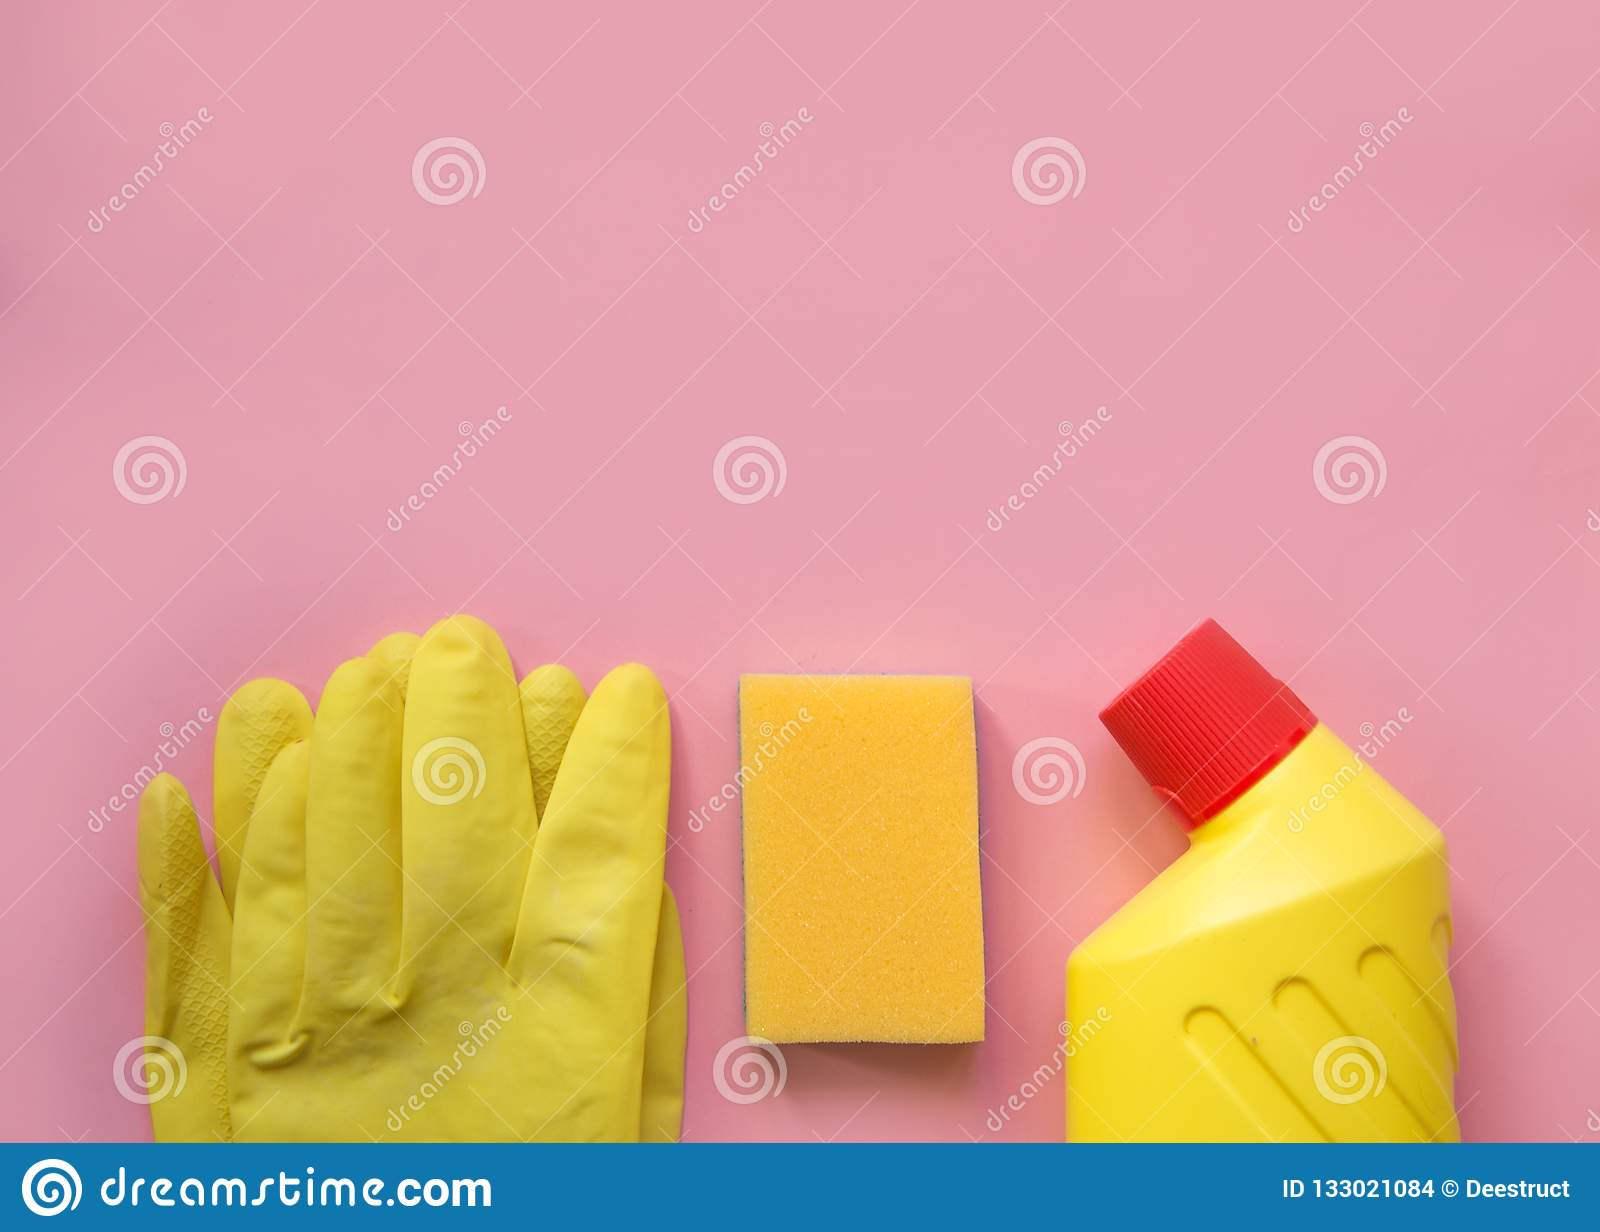 Cleaning tools. cleaning equipment in yellow and red colors.Top view with copy space